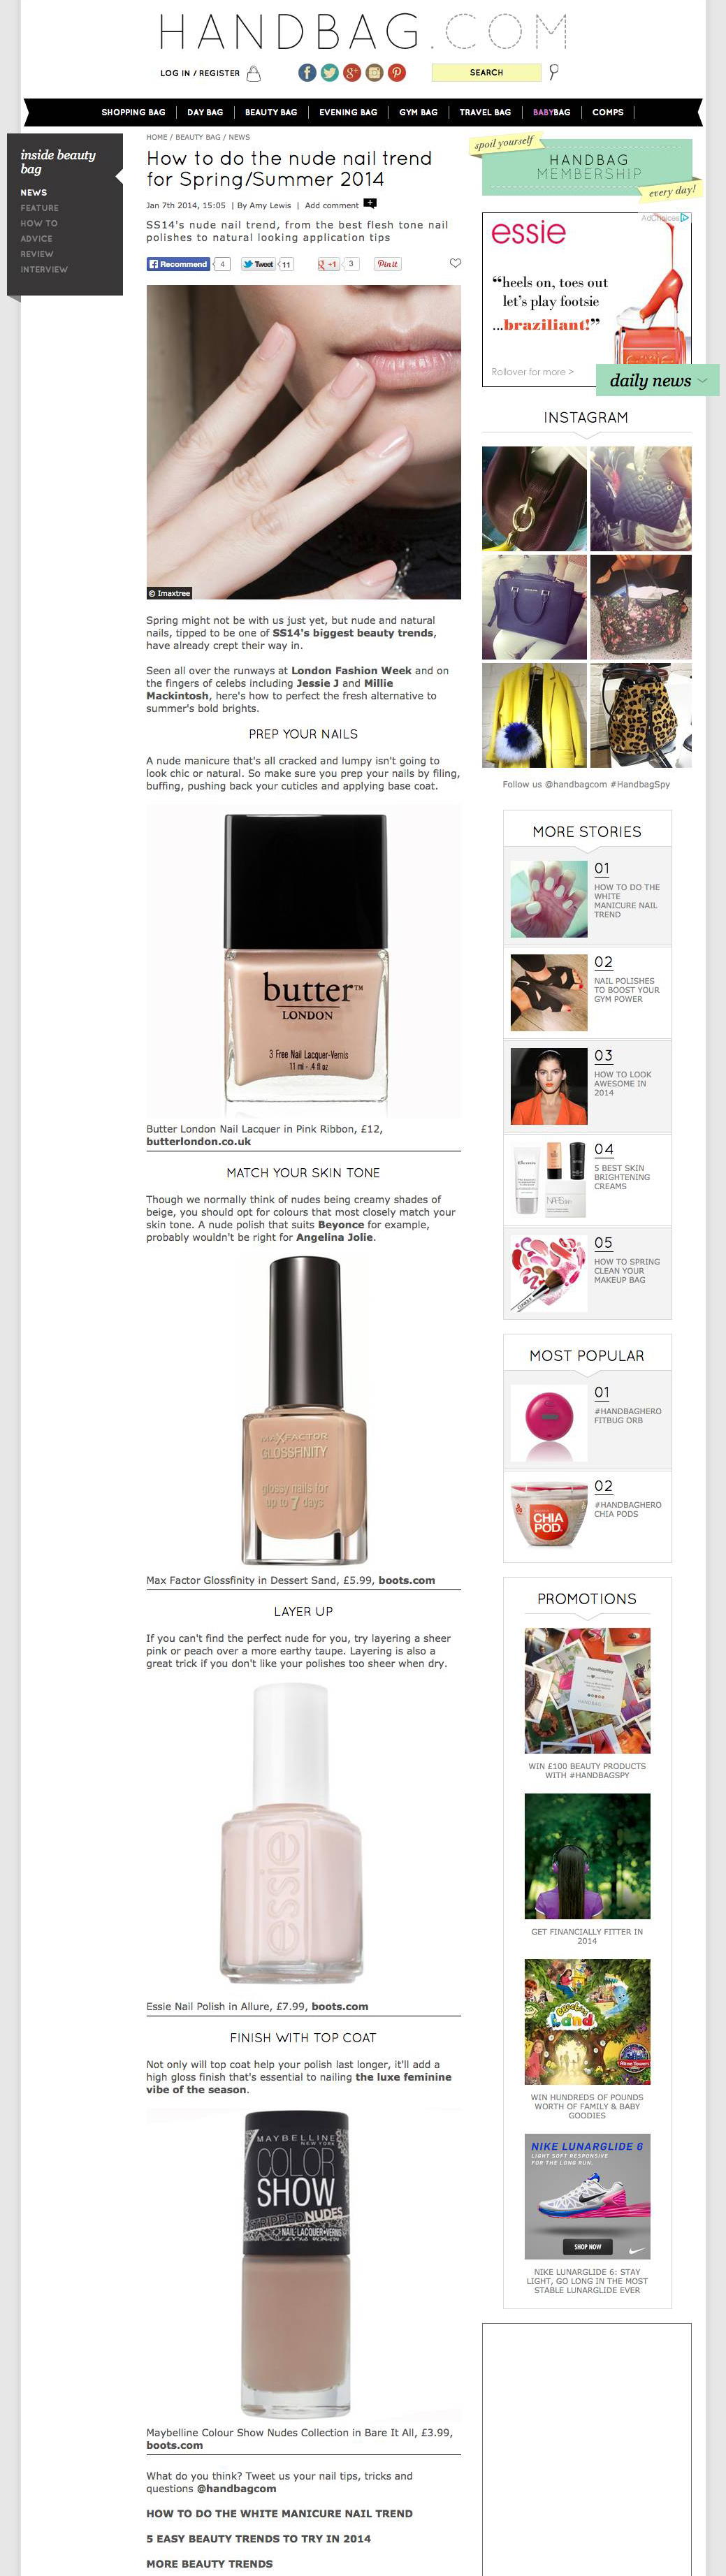 How_to_do_the_nude_nail_trend_for_Spring_Summer_2014_-_Beauty_Bag_News_-_handbag.com_-_2014-07-31_11.30.17.png